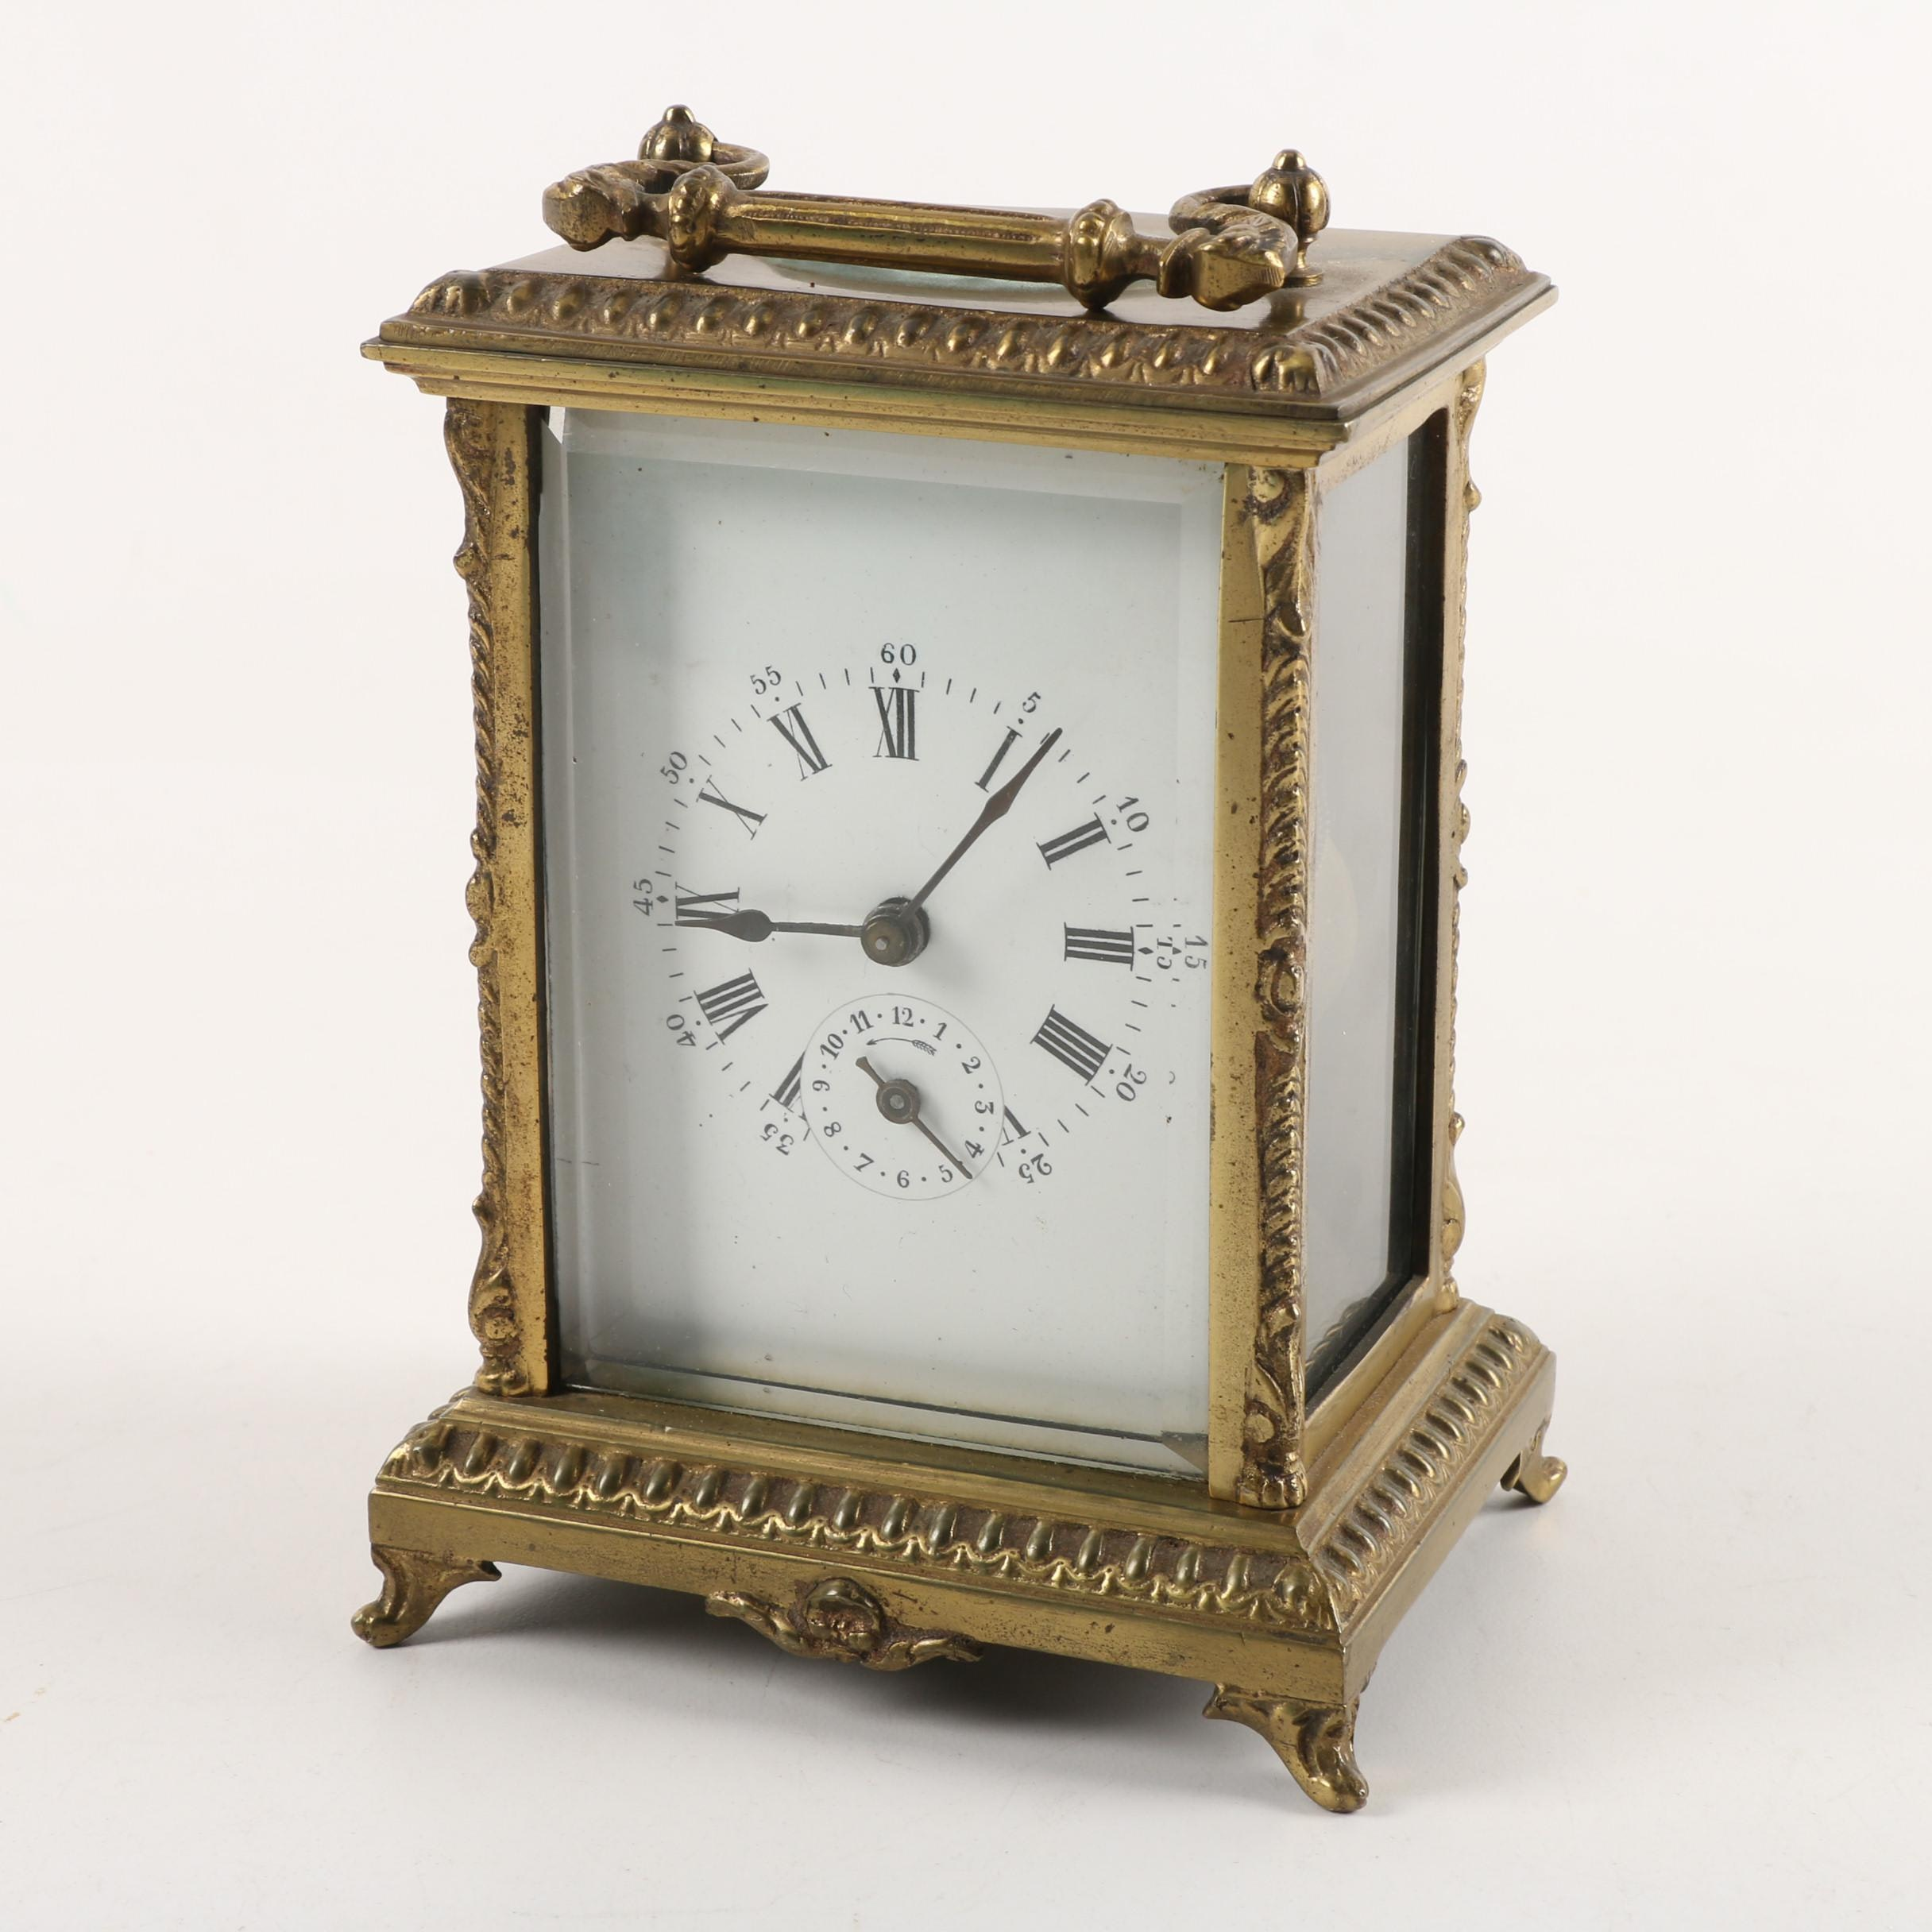 'Grand Prix De L'horlogerie 1878' Déposé Breveté French Carriage Clock